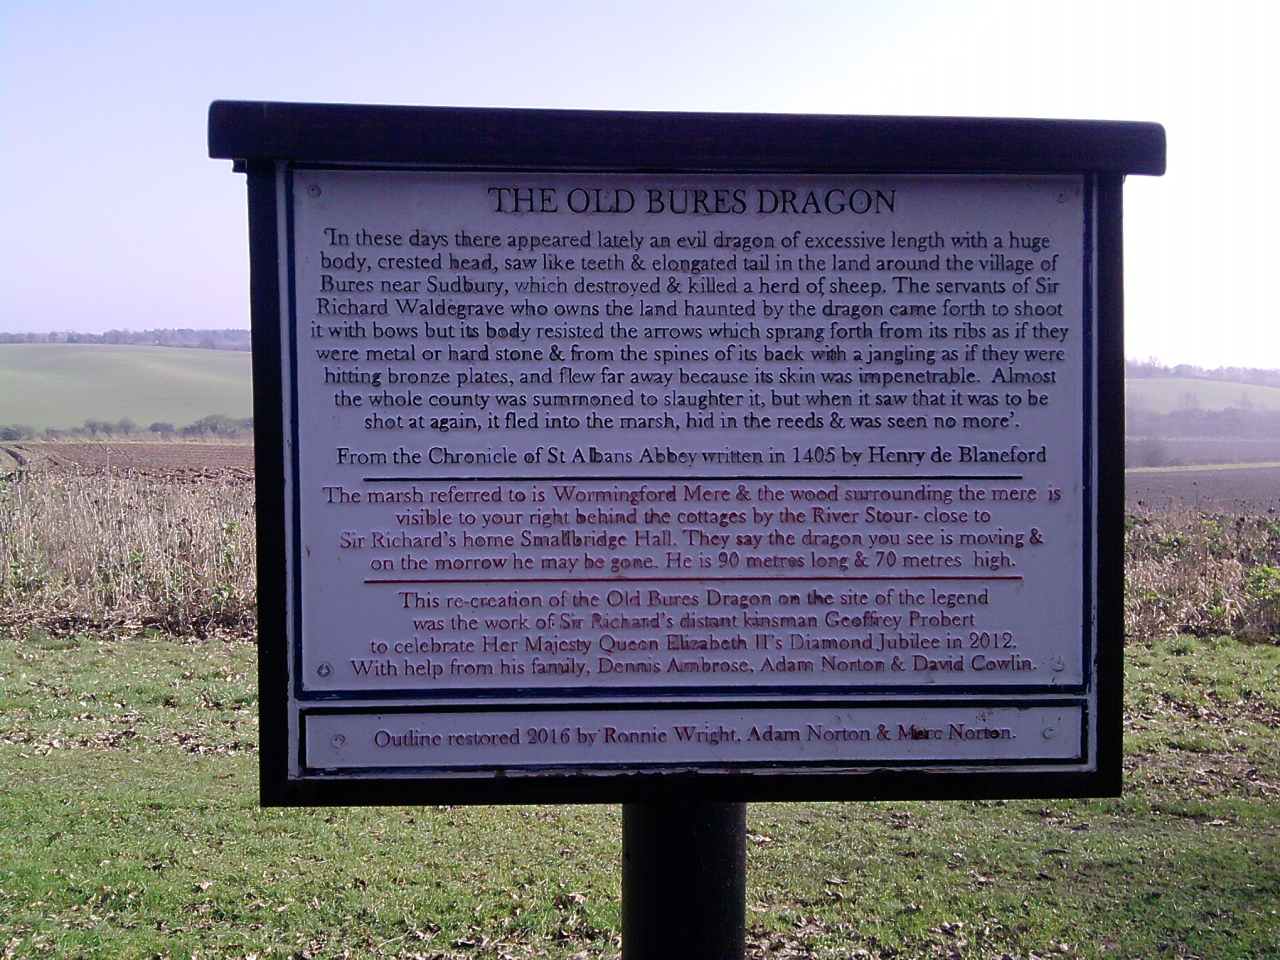 The Old Dragon of Bures